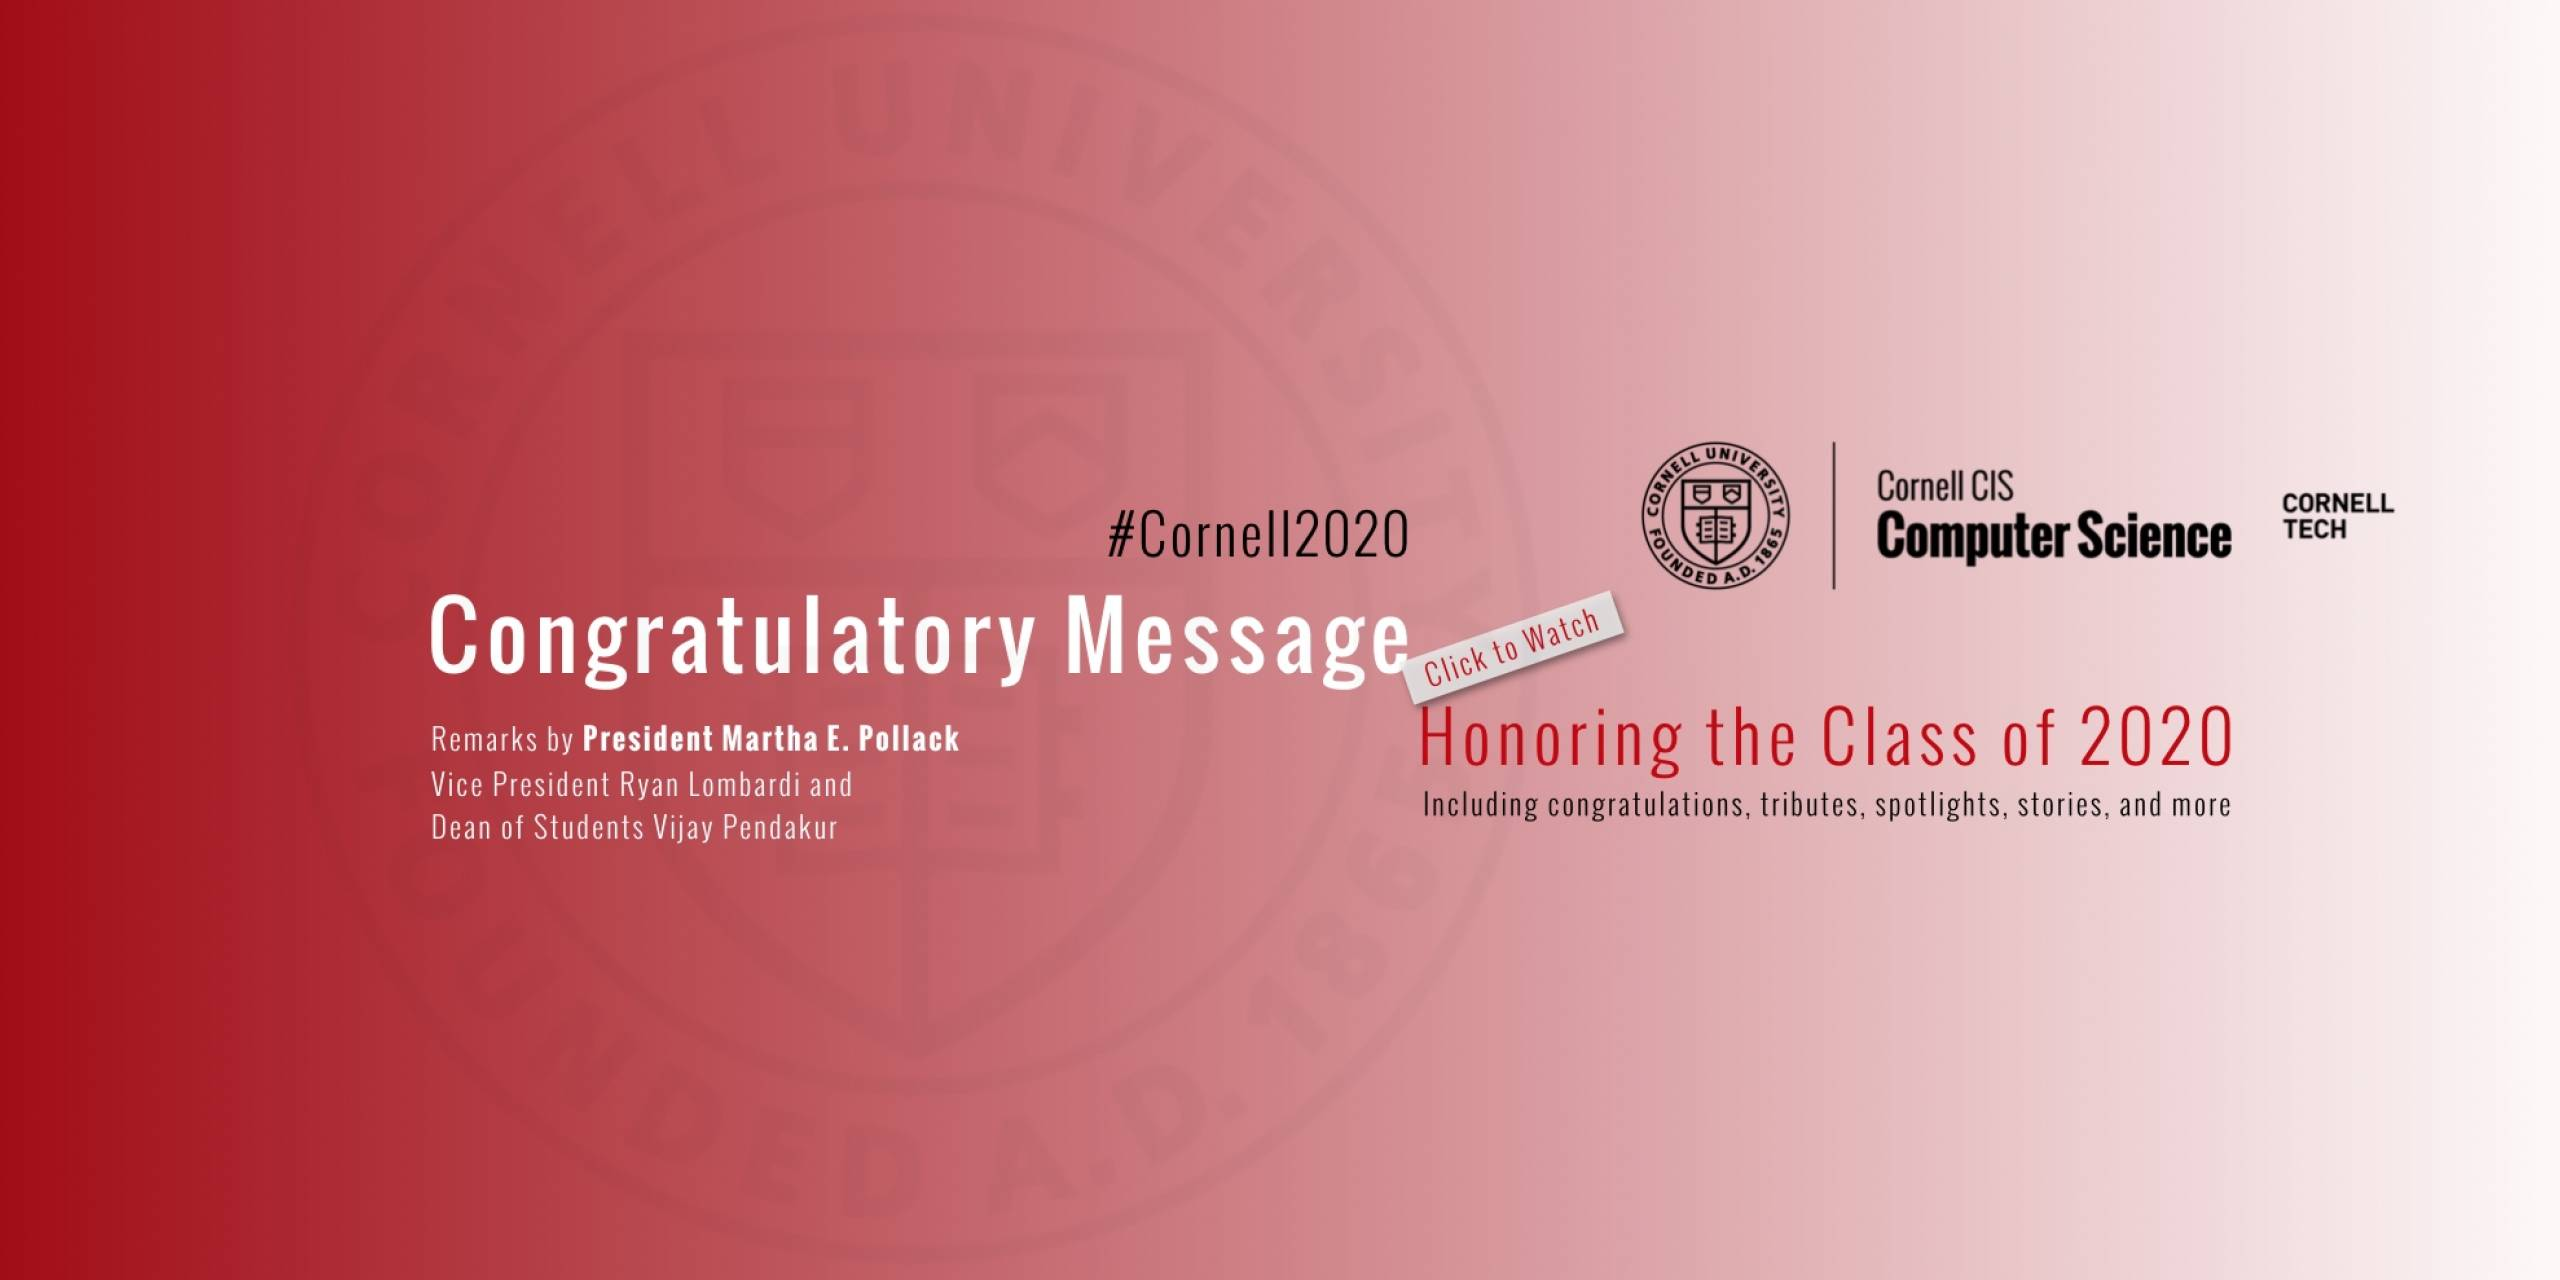 Congratulatory Message, Honoring the Class of 2020